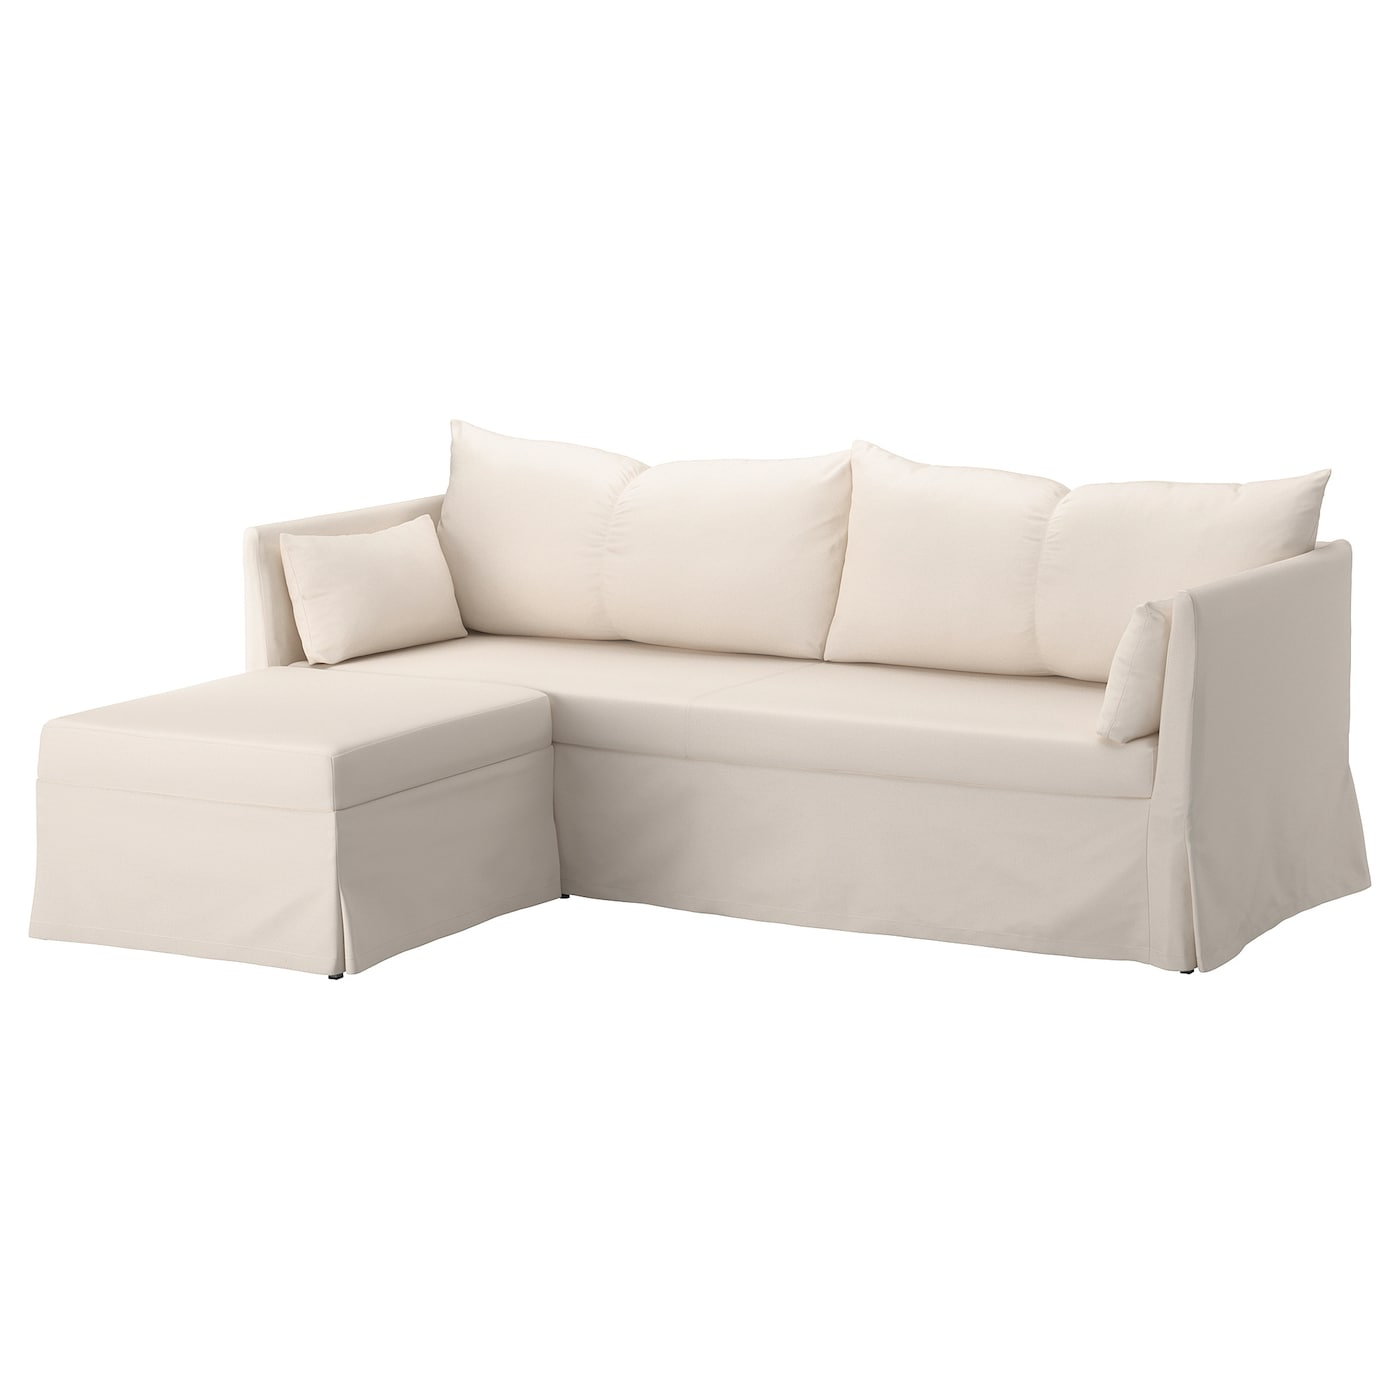 Bettsofa ikea lycksele  Sofa Beds & Futons | IKEA